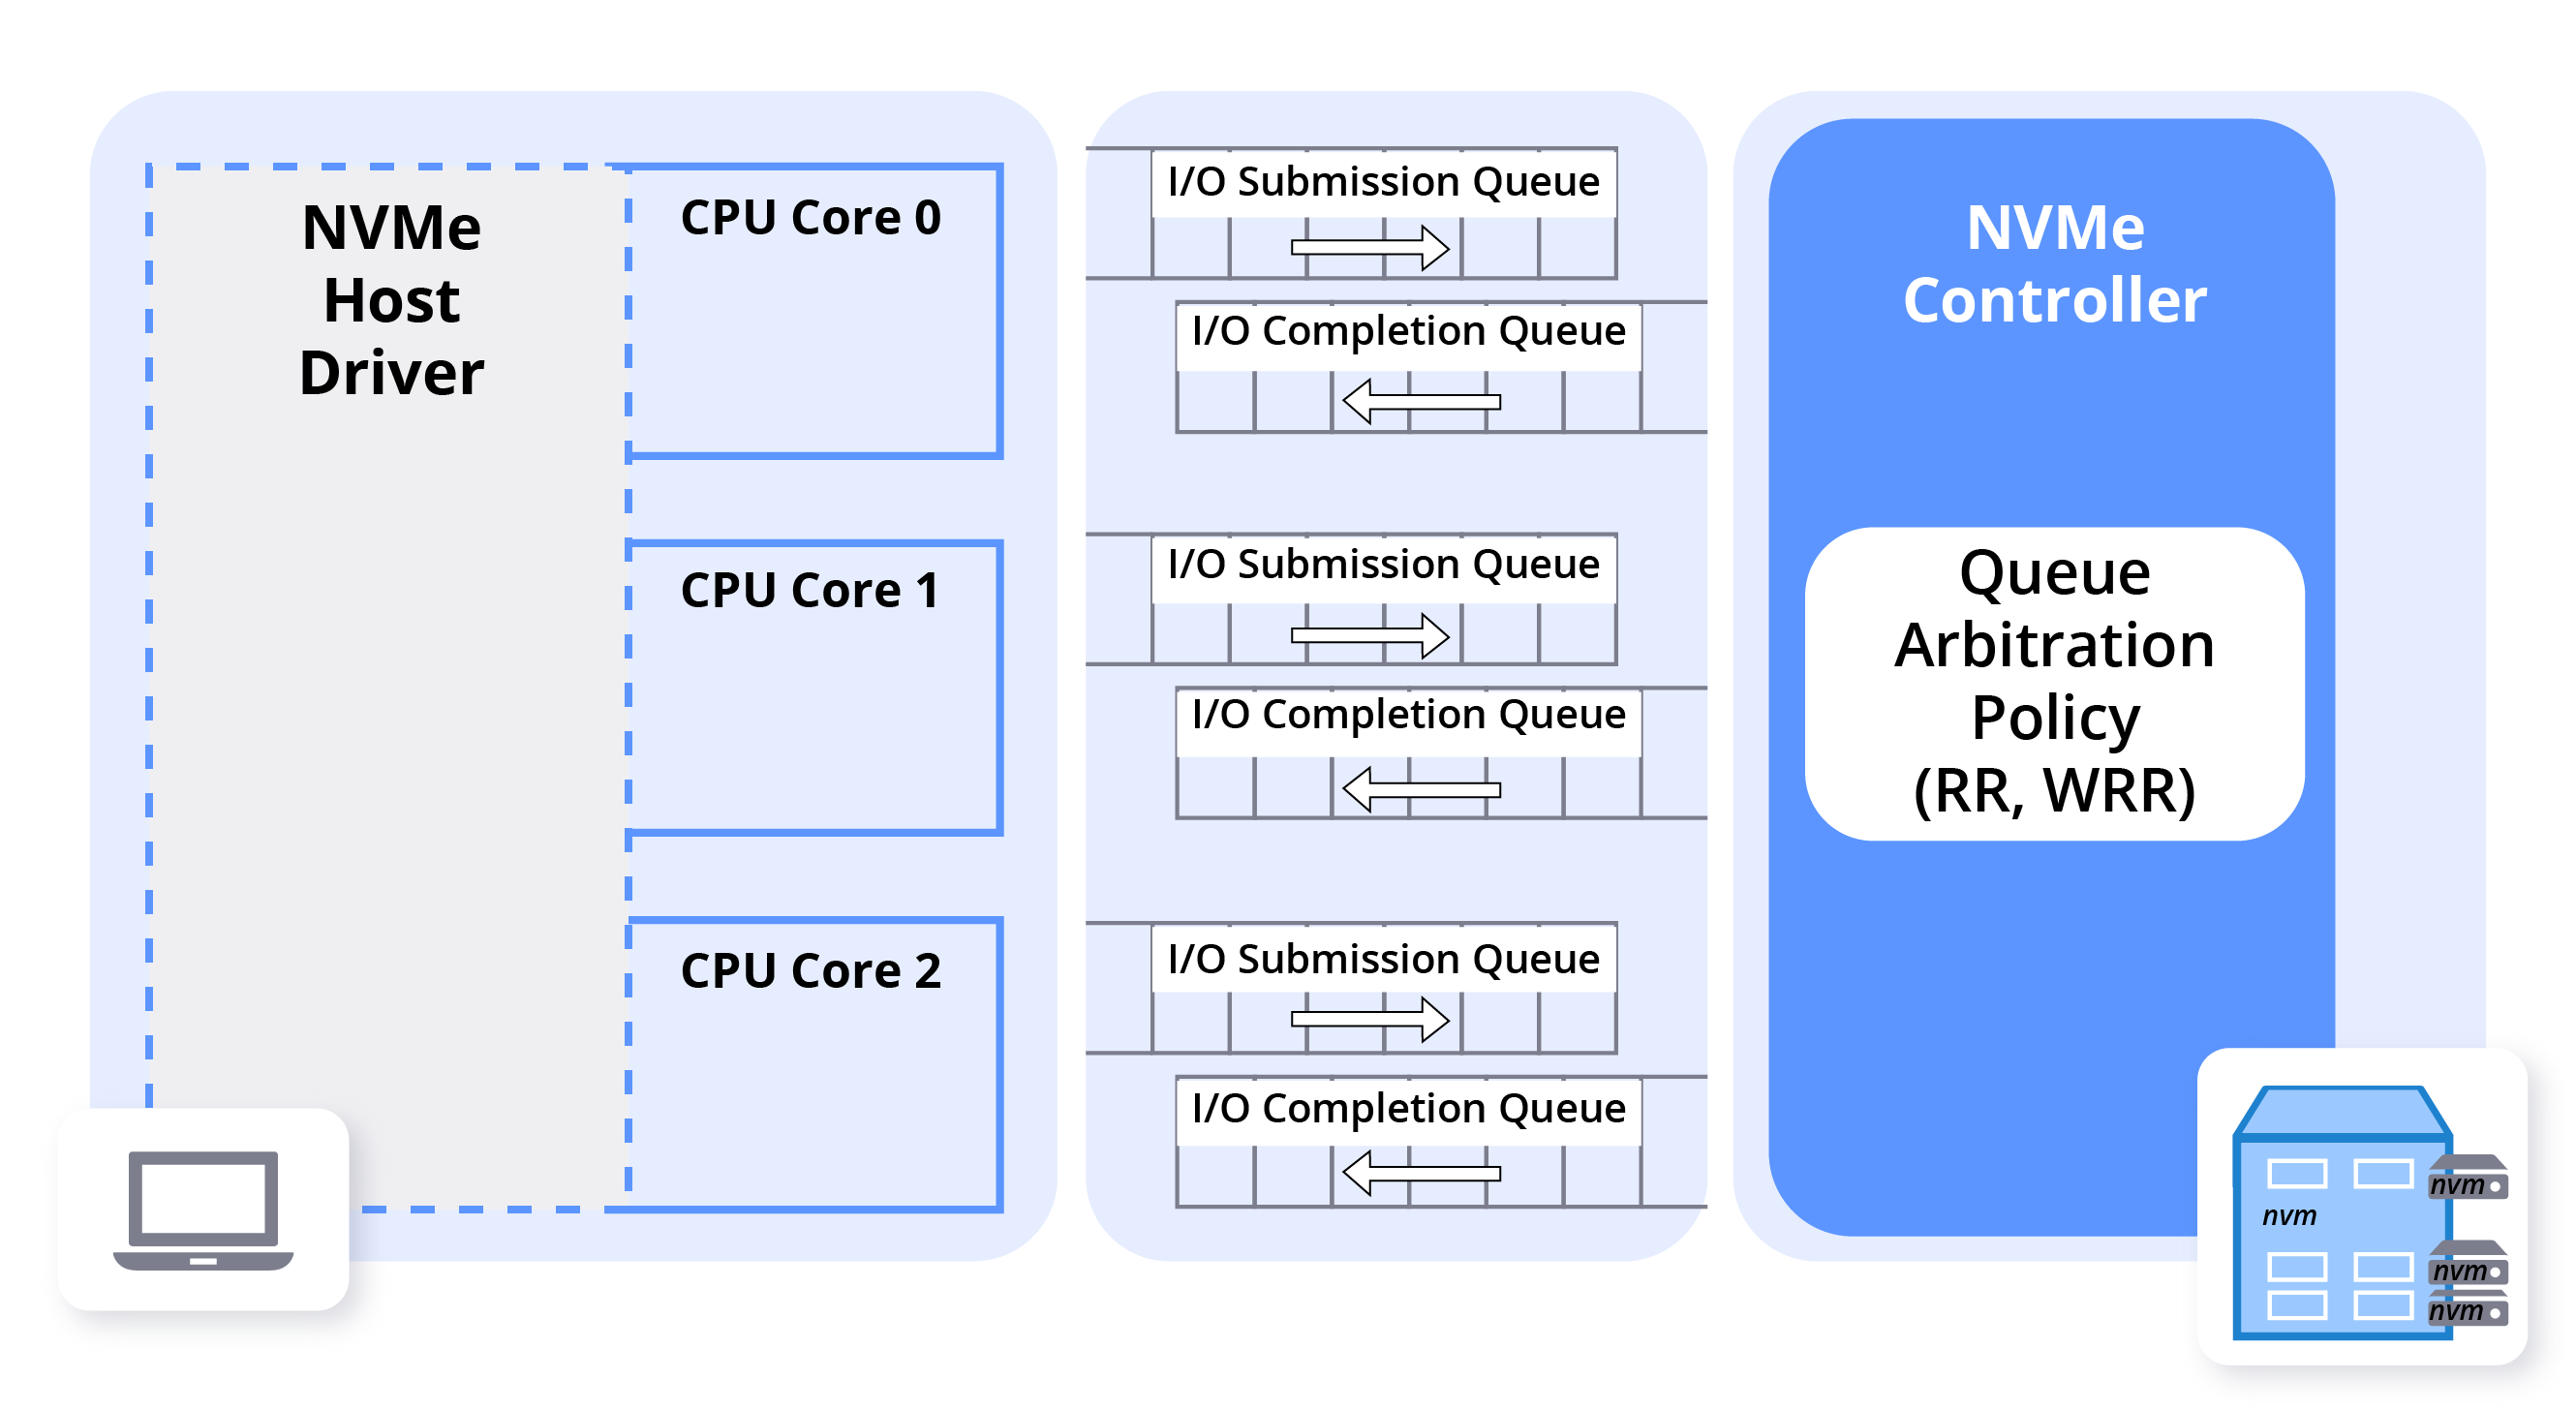 NVMe Controller Architecture